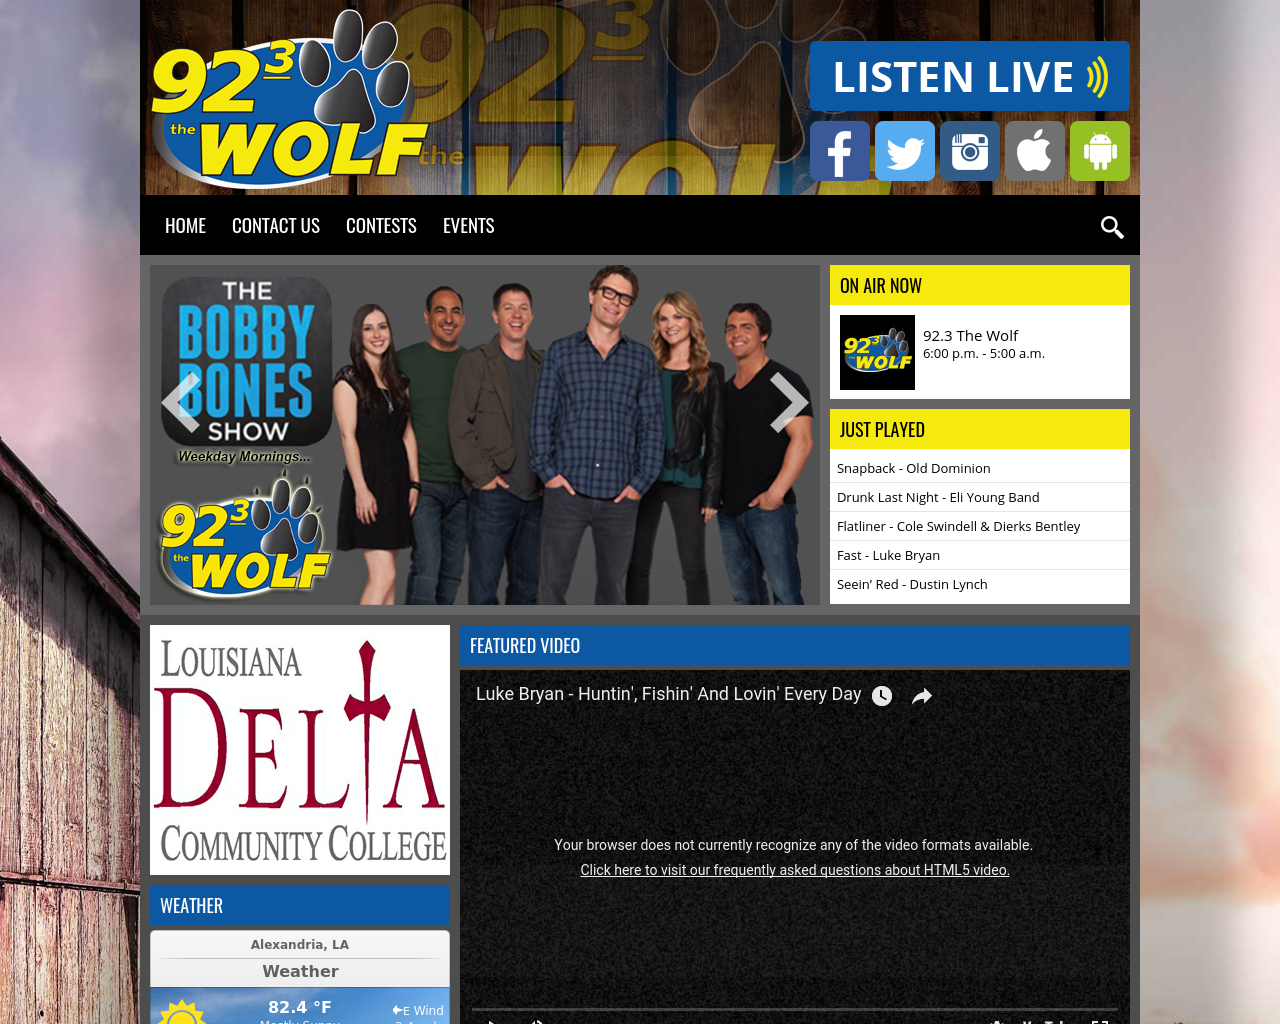 92.3-The-Wolf-Advertising-Reviews-Pricing